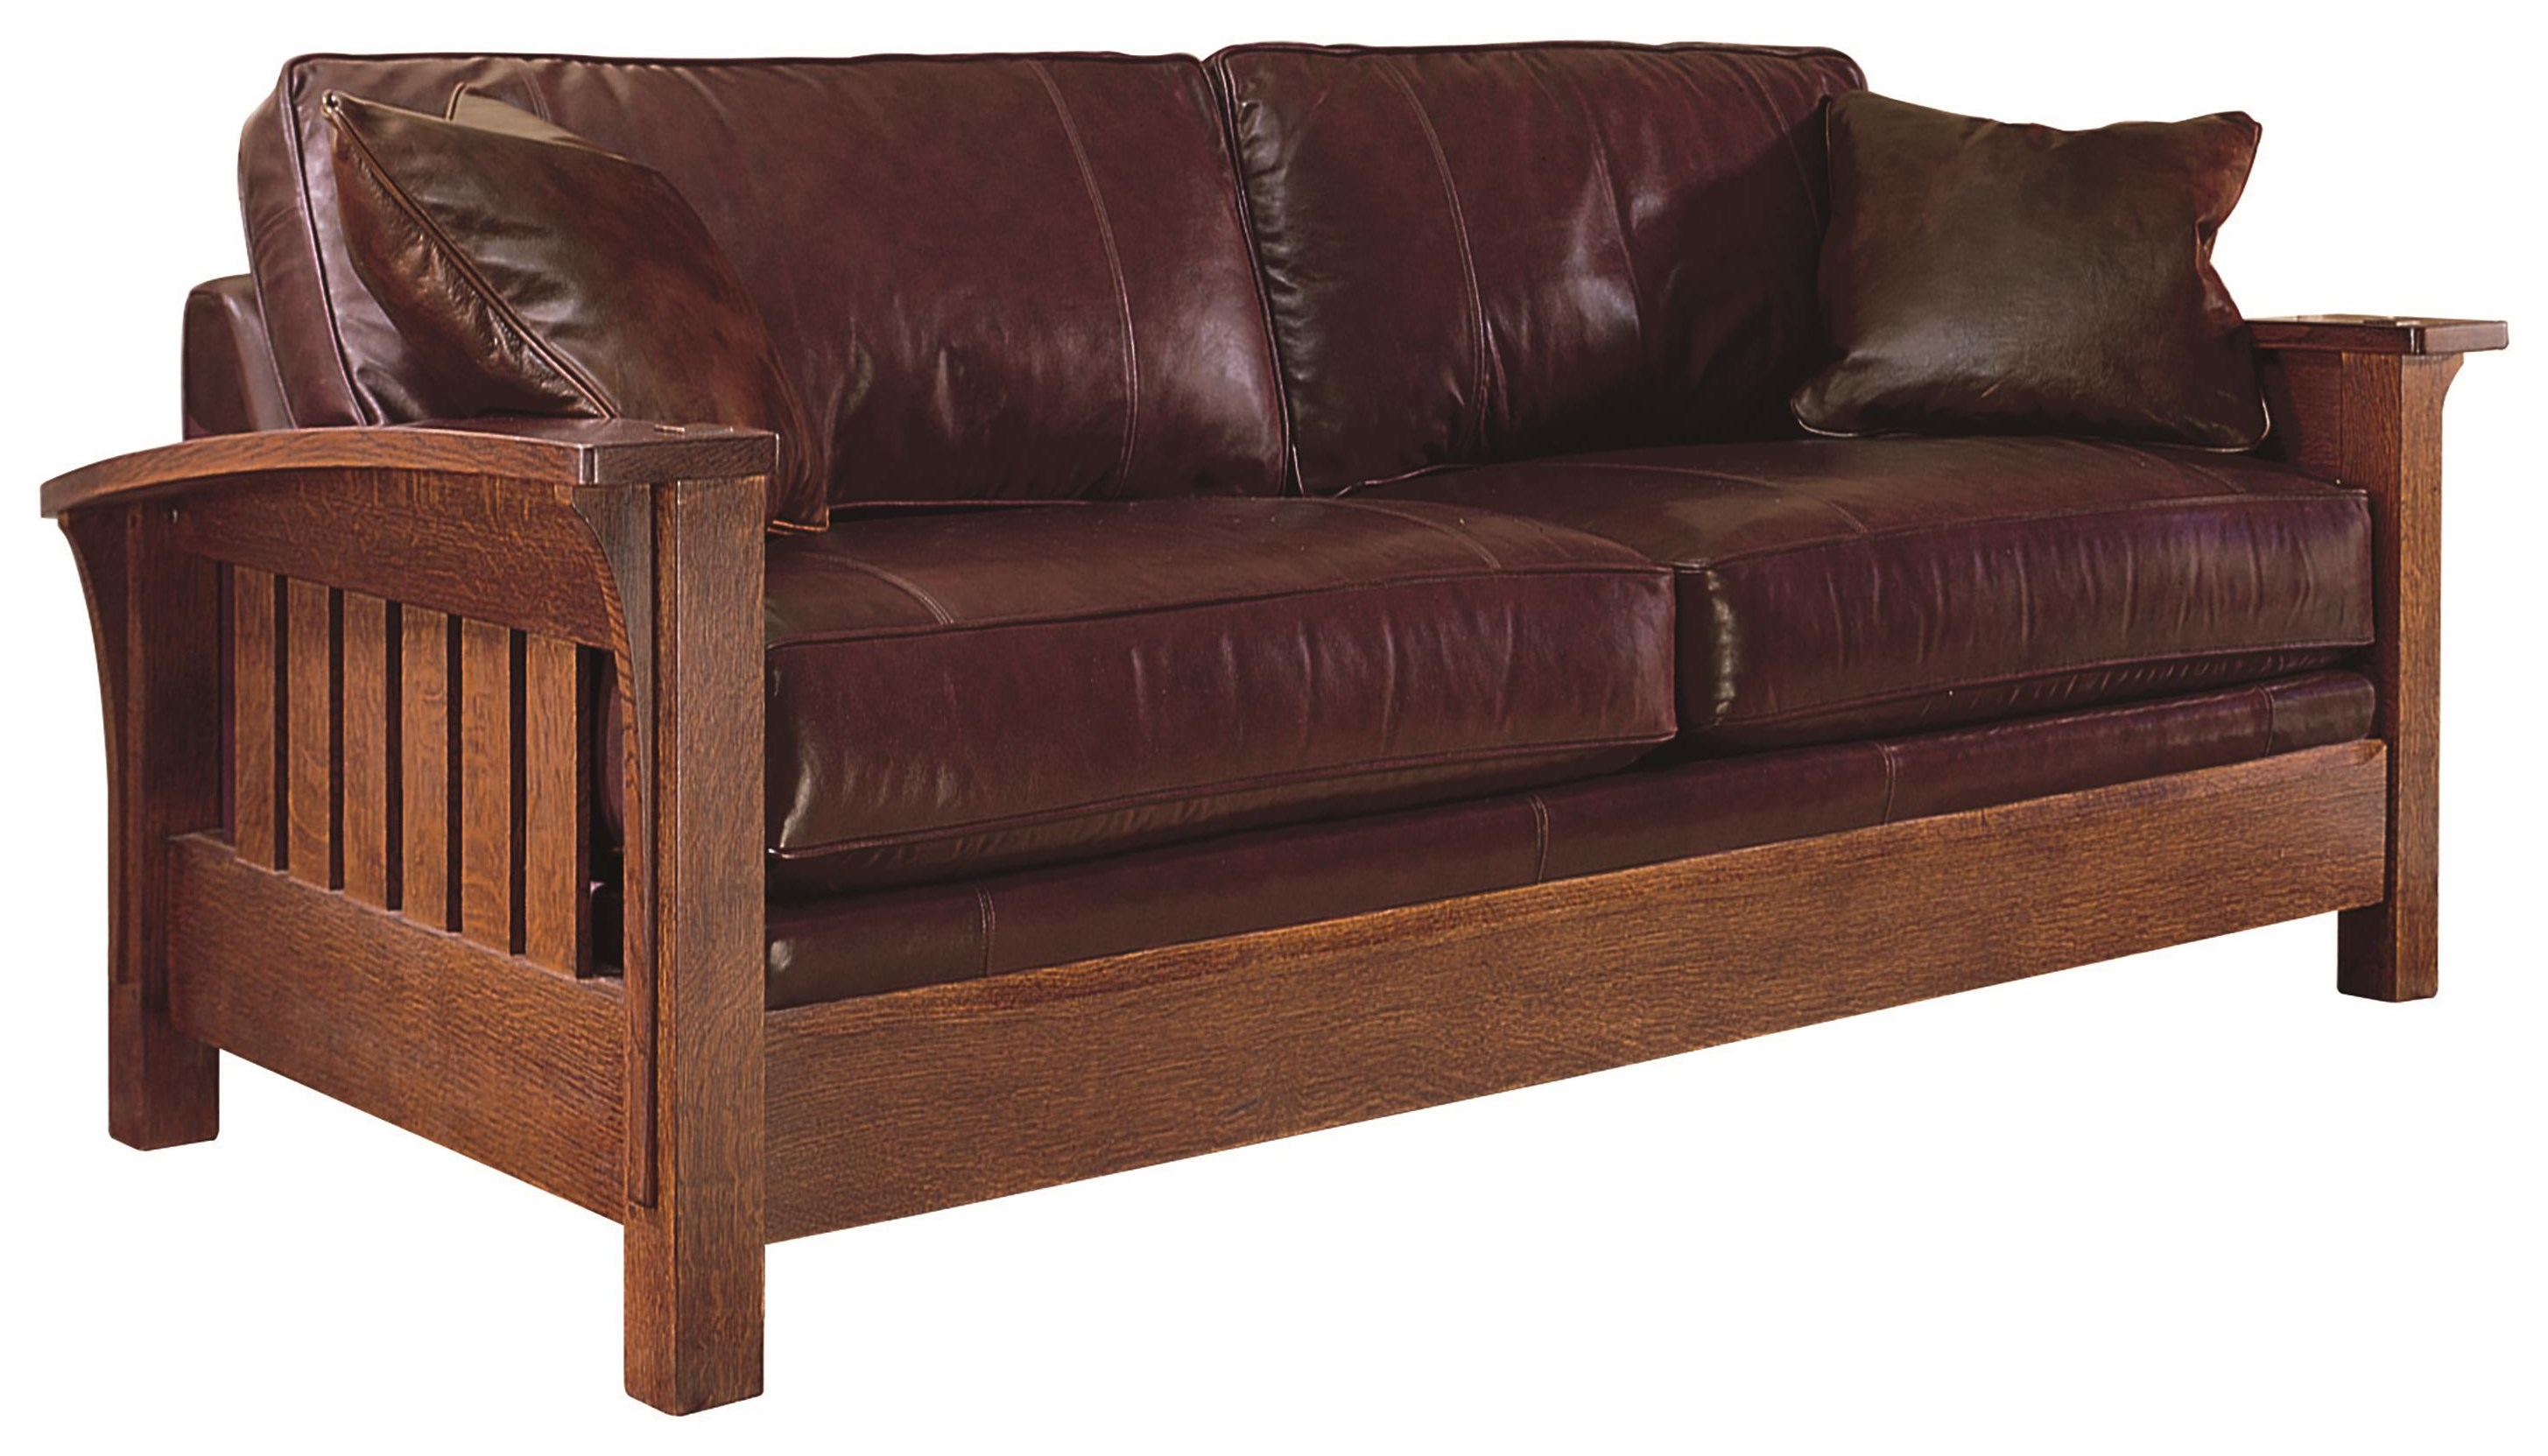 Cherry Mission Collection  Mission Sofa by Stickley at Williams & Kay